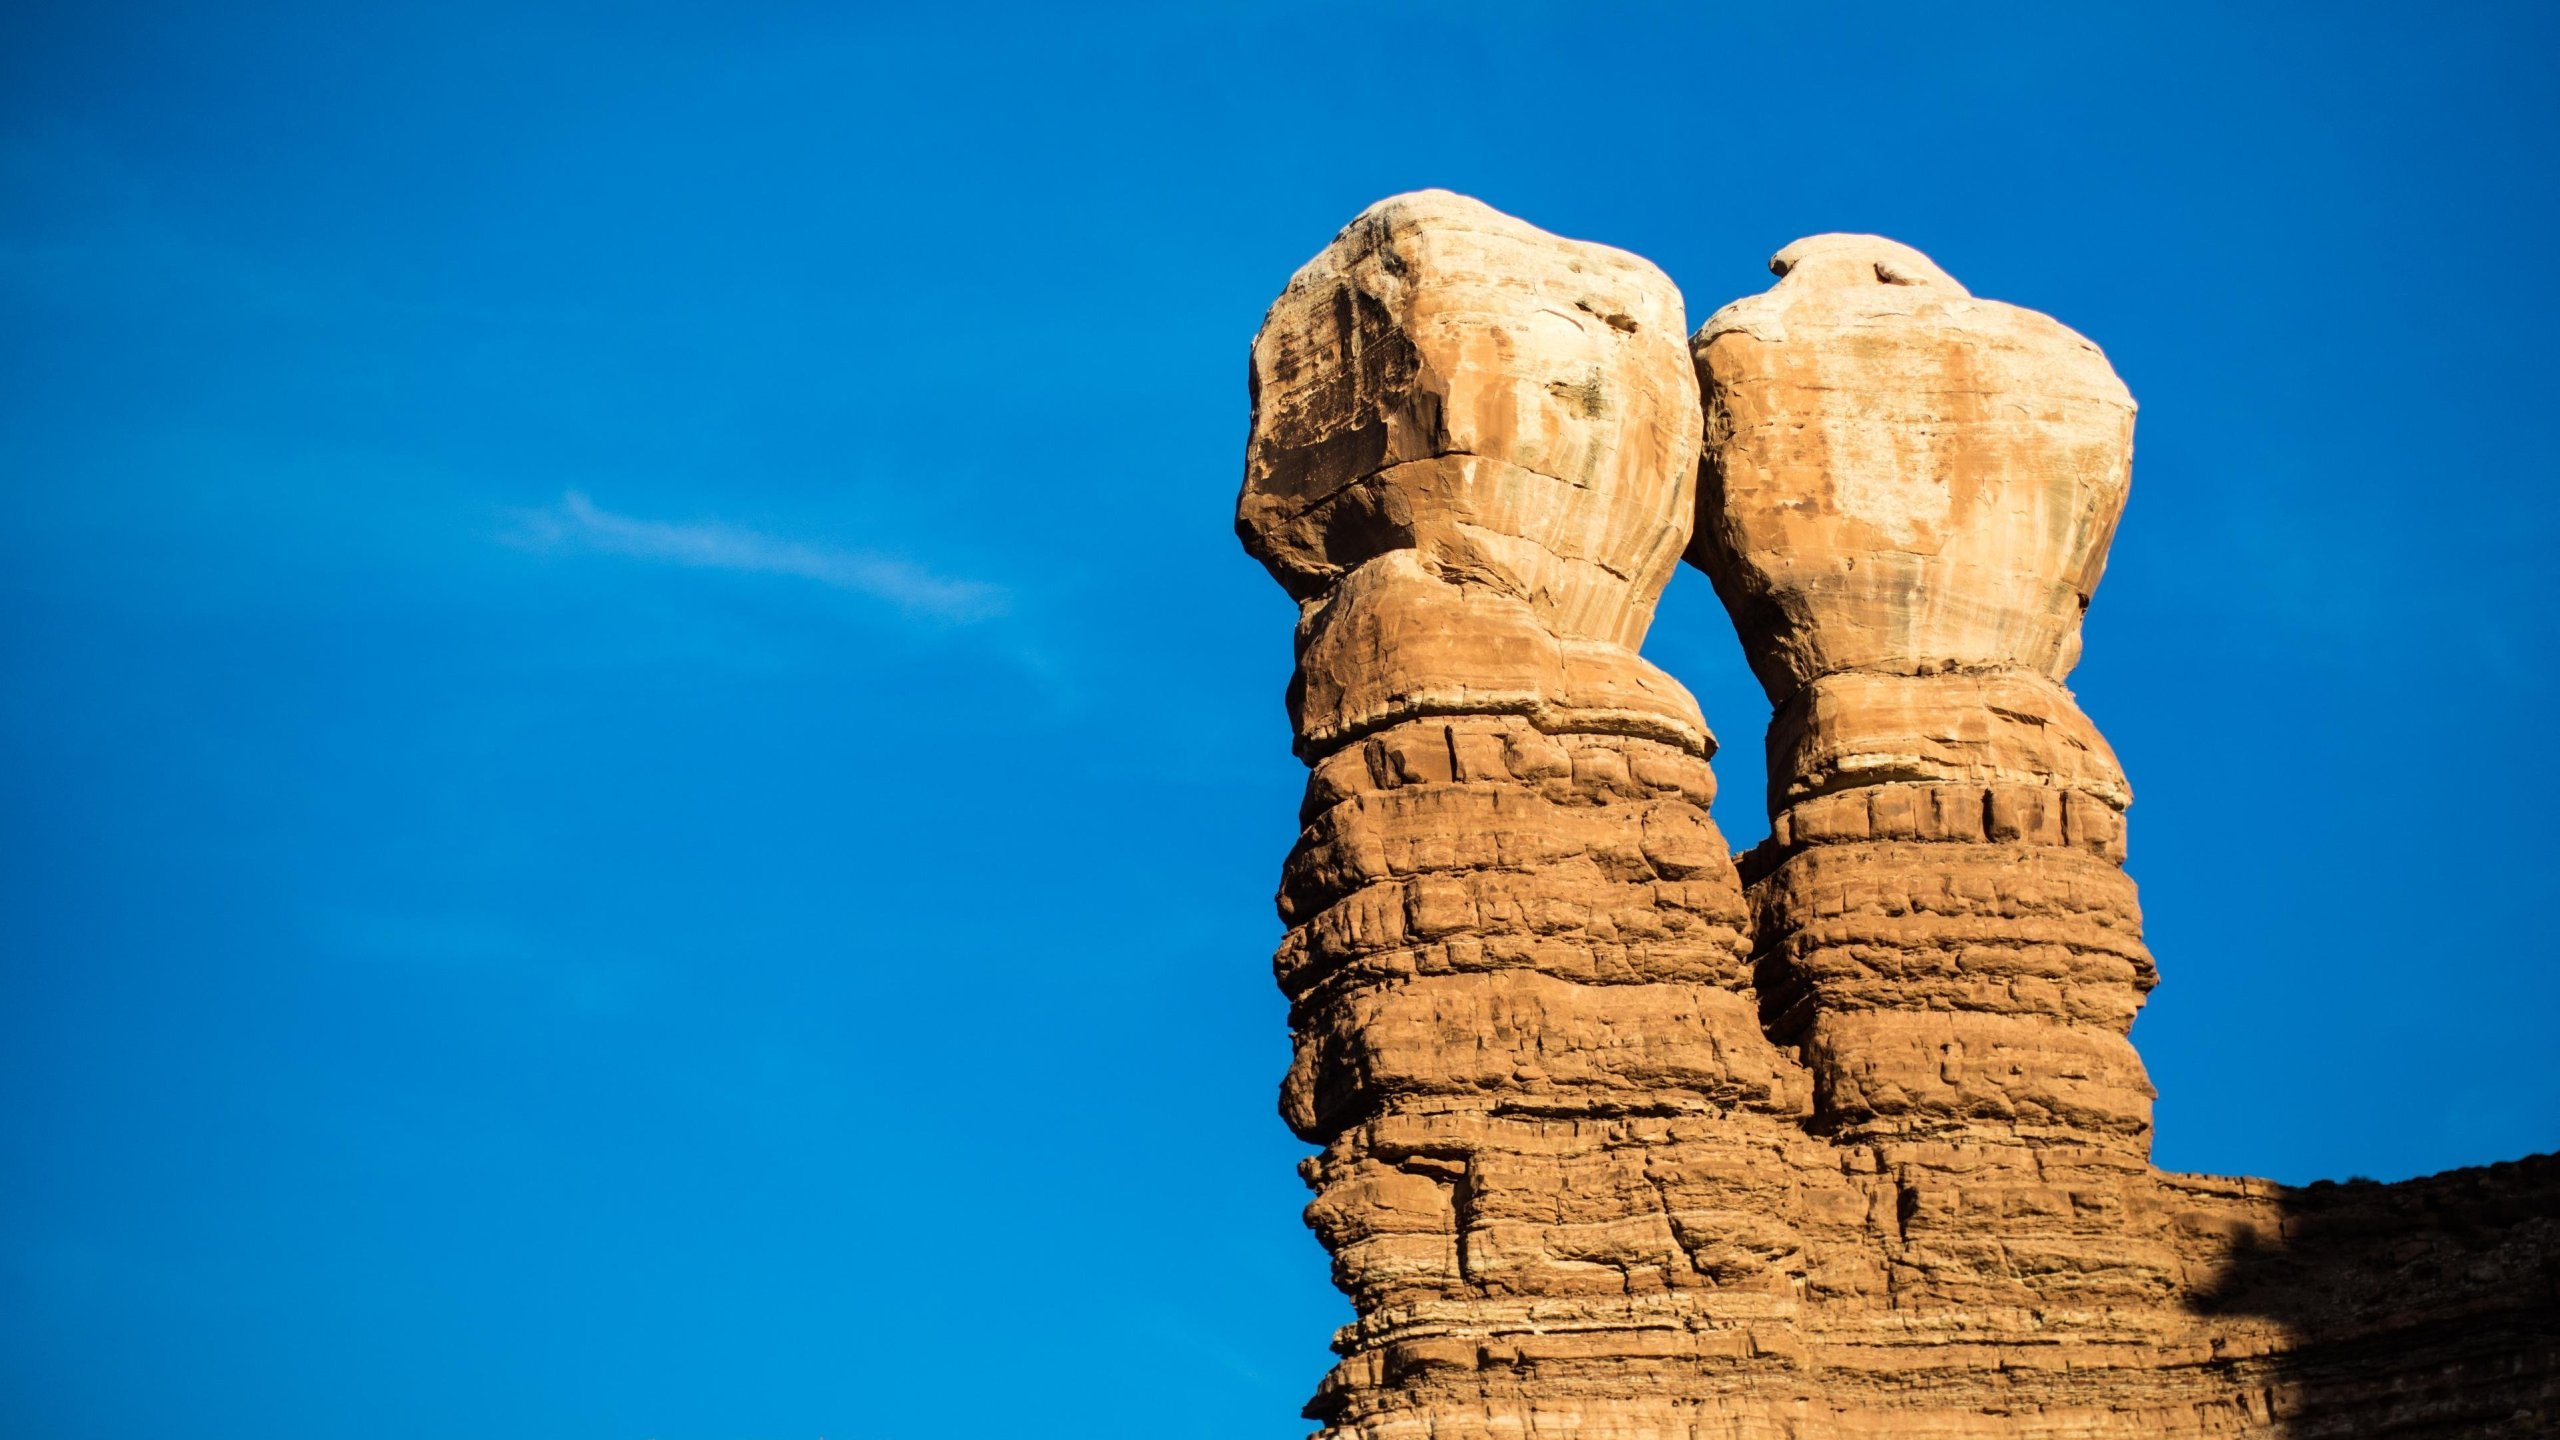 Hoodoos, among the natural wonders in Bears Ears National Monument in Utah, is seen in this undated CNN photo.